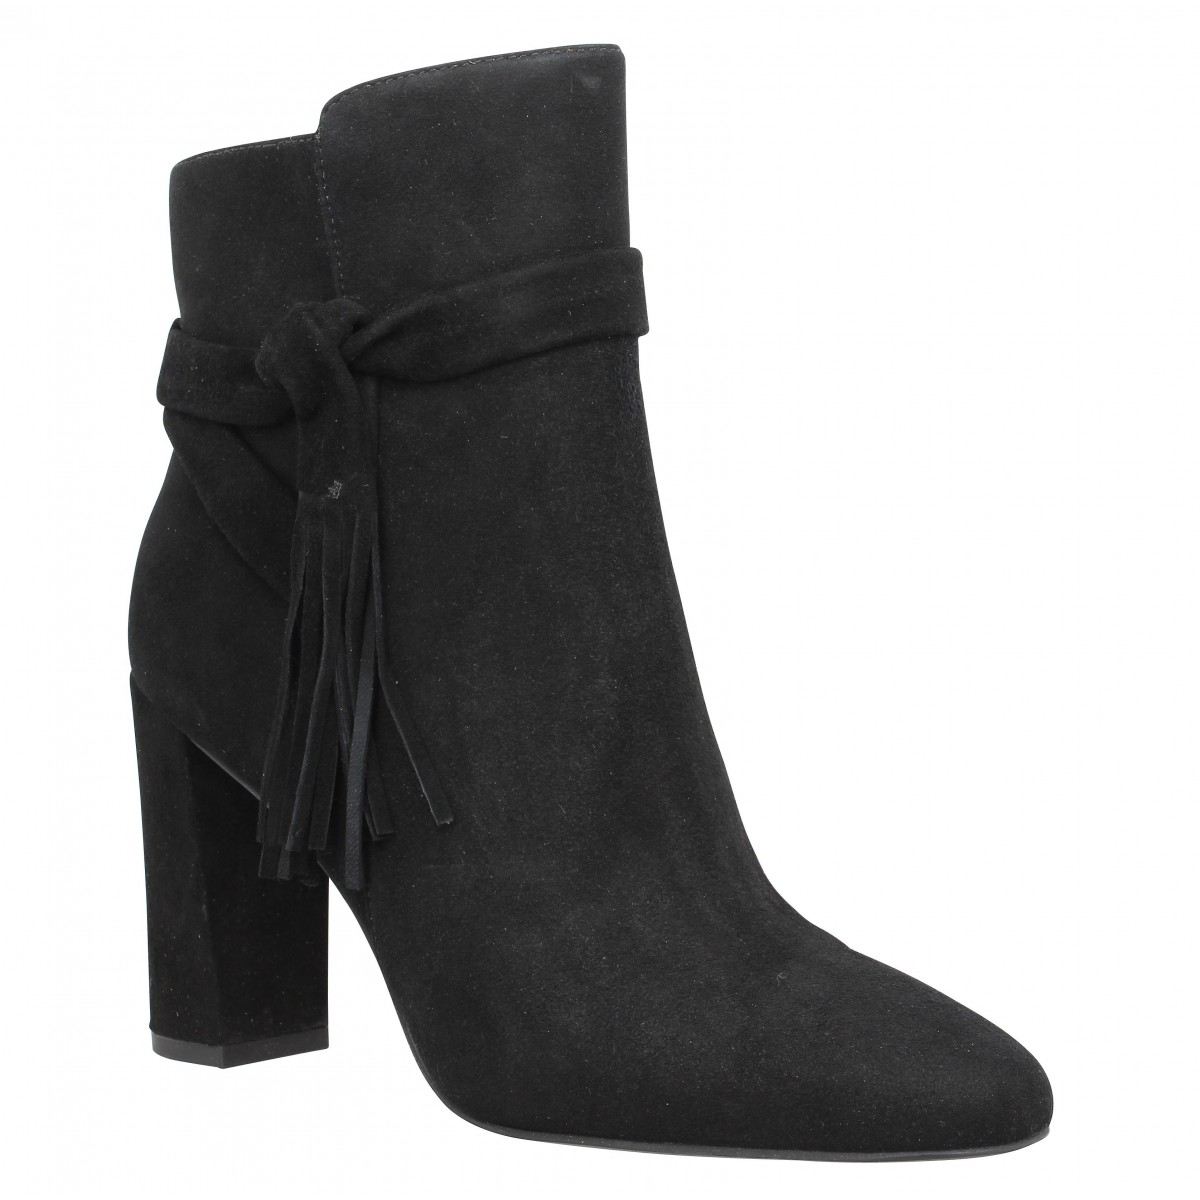 Bottines WHAT FOR 112 Femme Noir